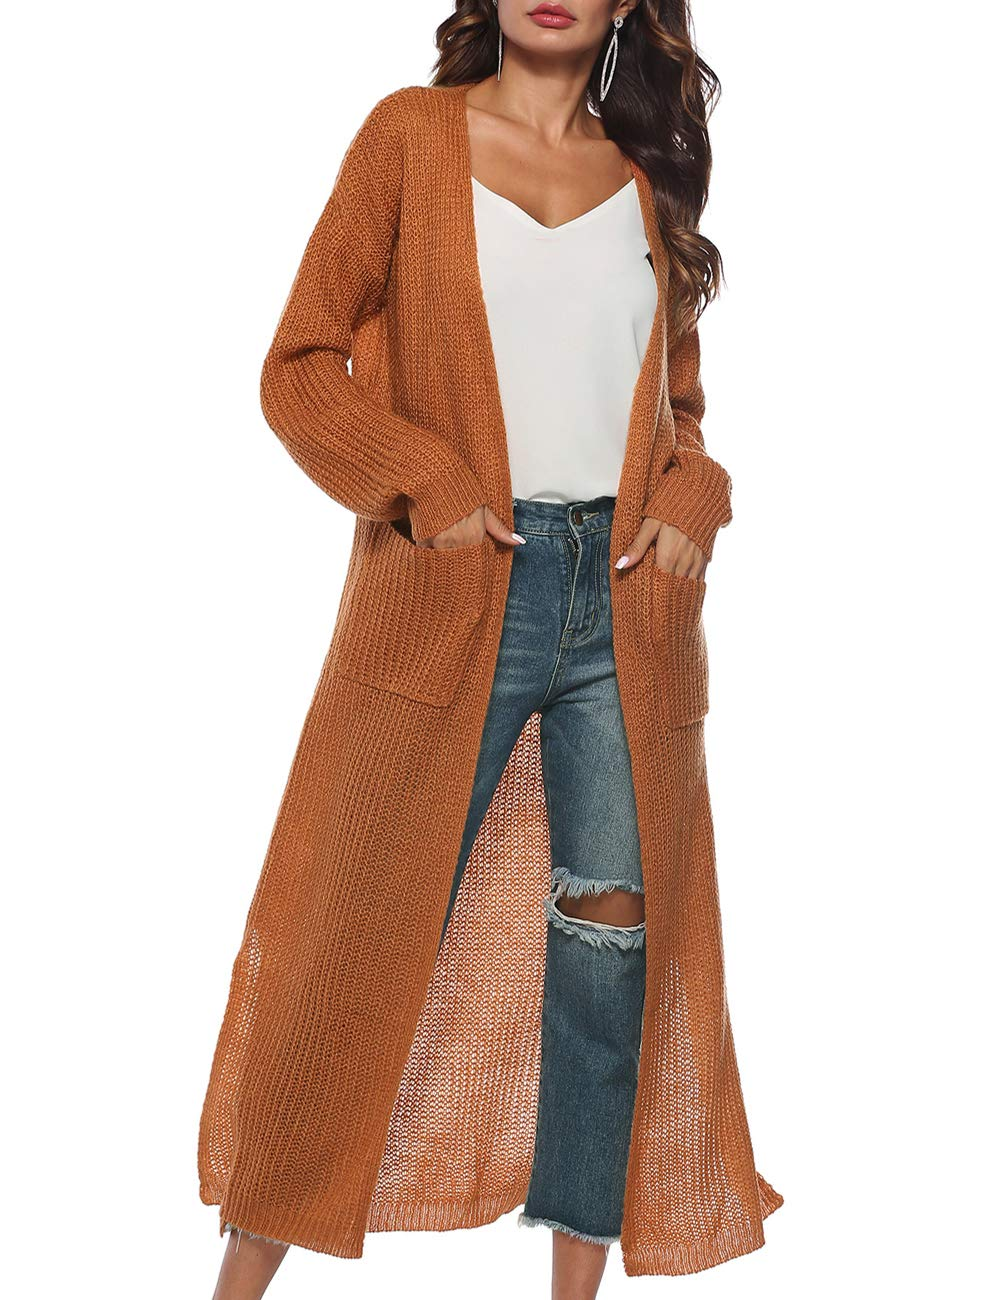 Blingfit Womens Casual Long Sleeve V Neck Cardigan Coat Chunky Knit Cardigan Sweater Slit Long Duster Cardigan Pockets